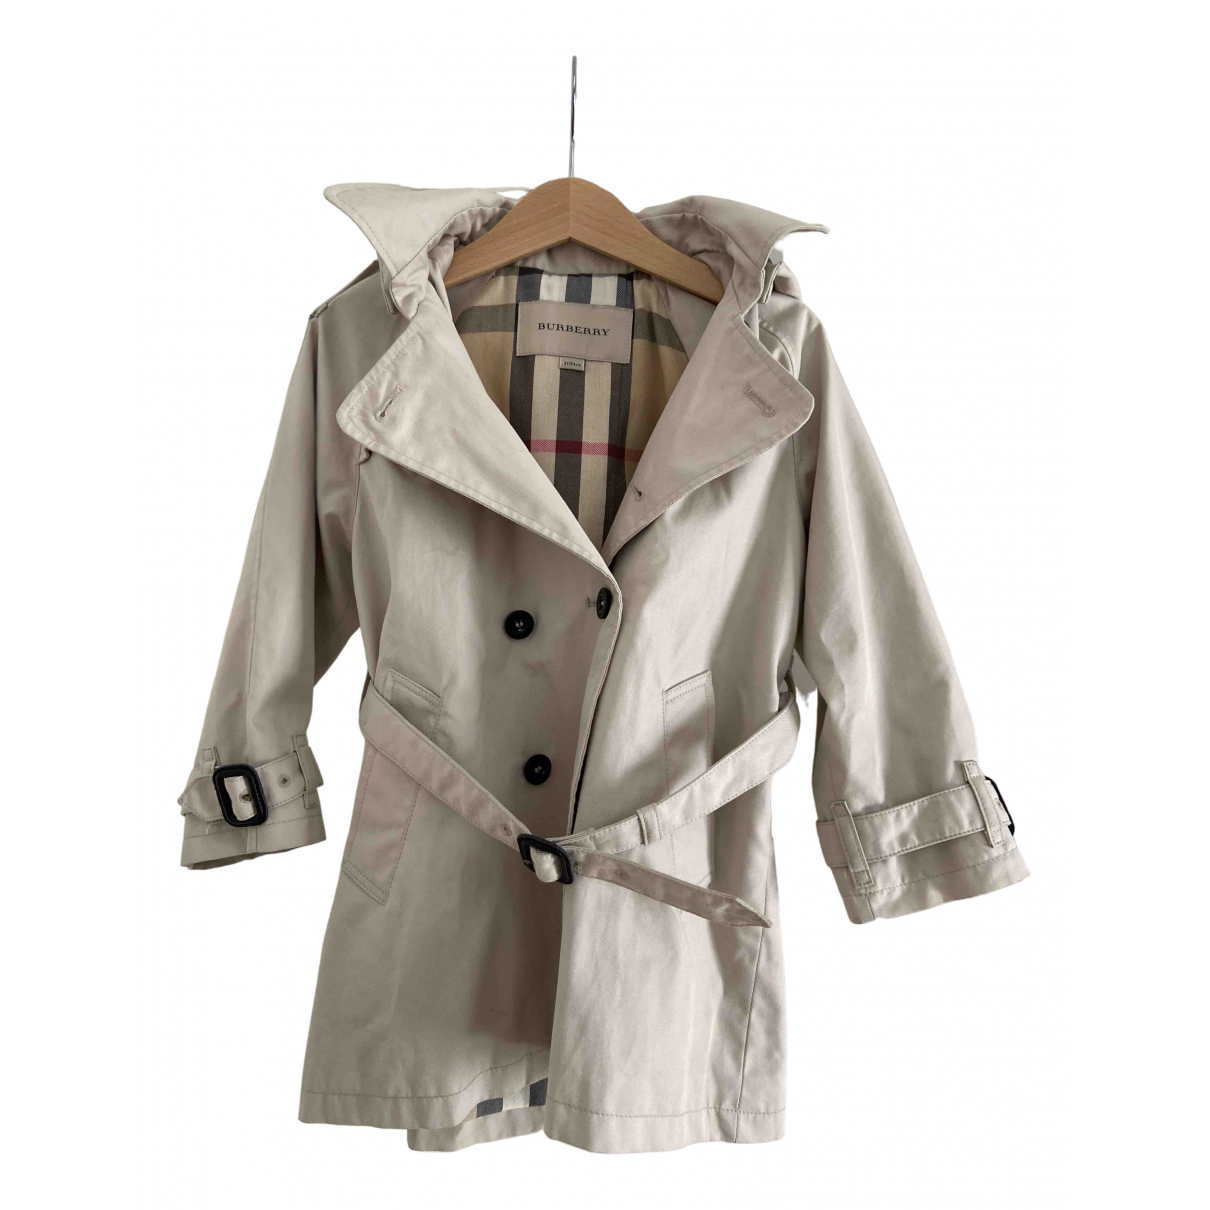 Burberry \N Beige Cotton jacket & coat for Kids 3 years - up to 98cm FR